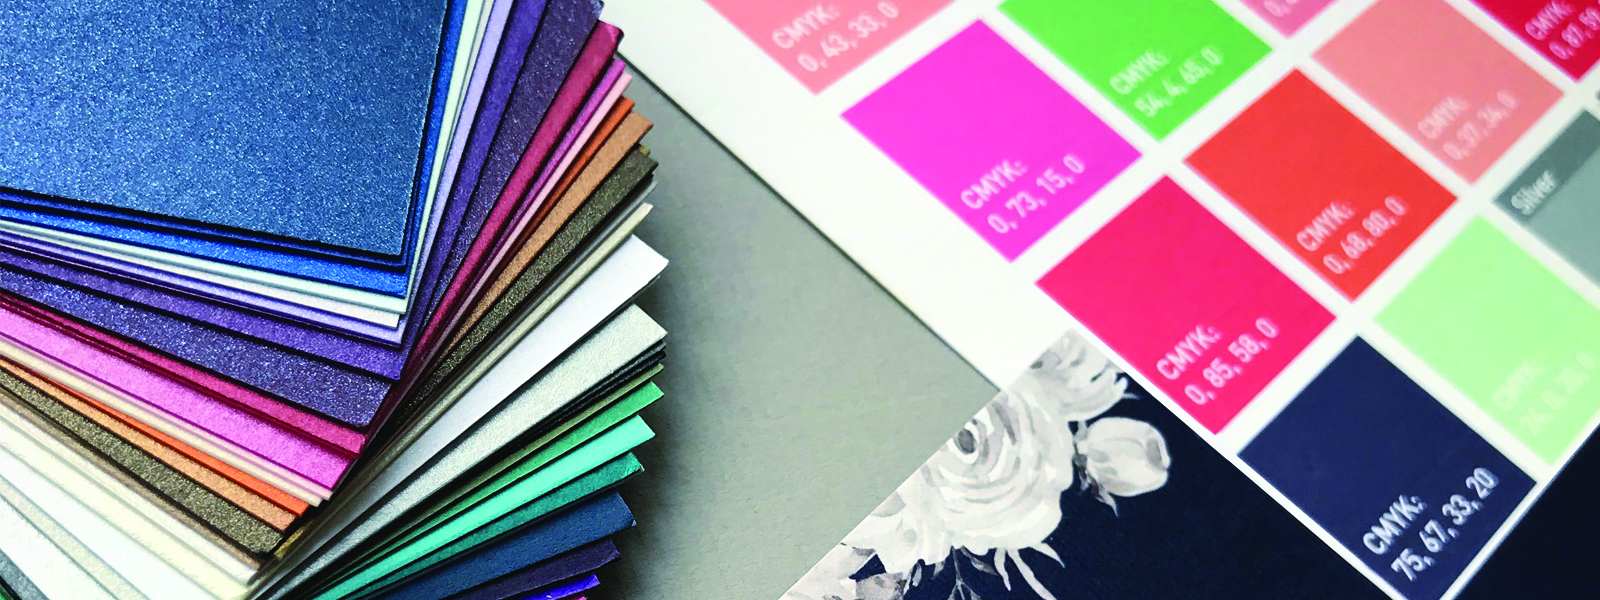 Nikki Swift Designs wedding stationery